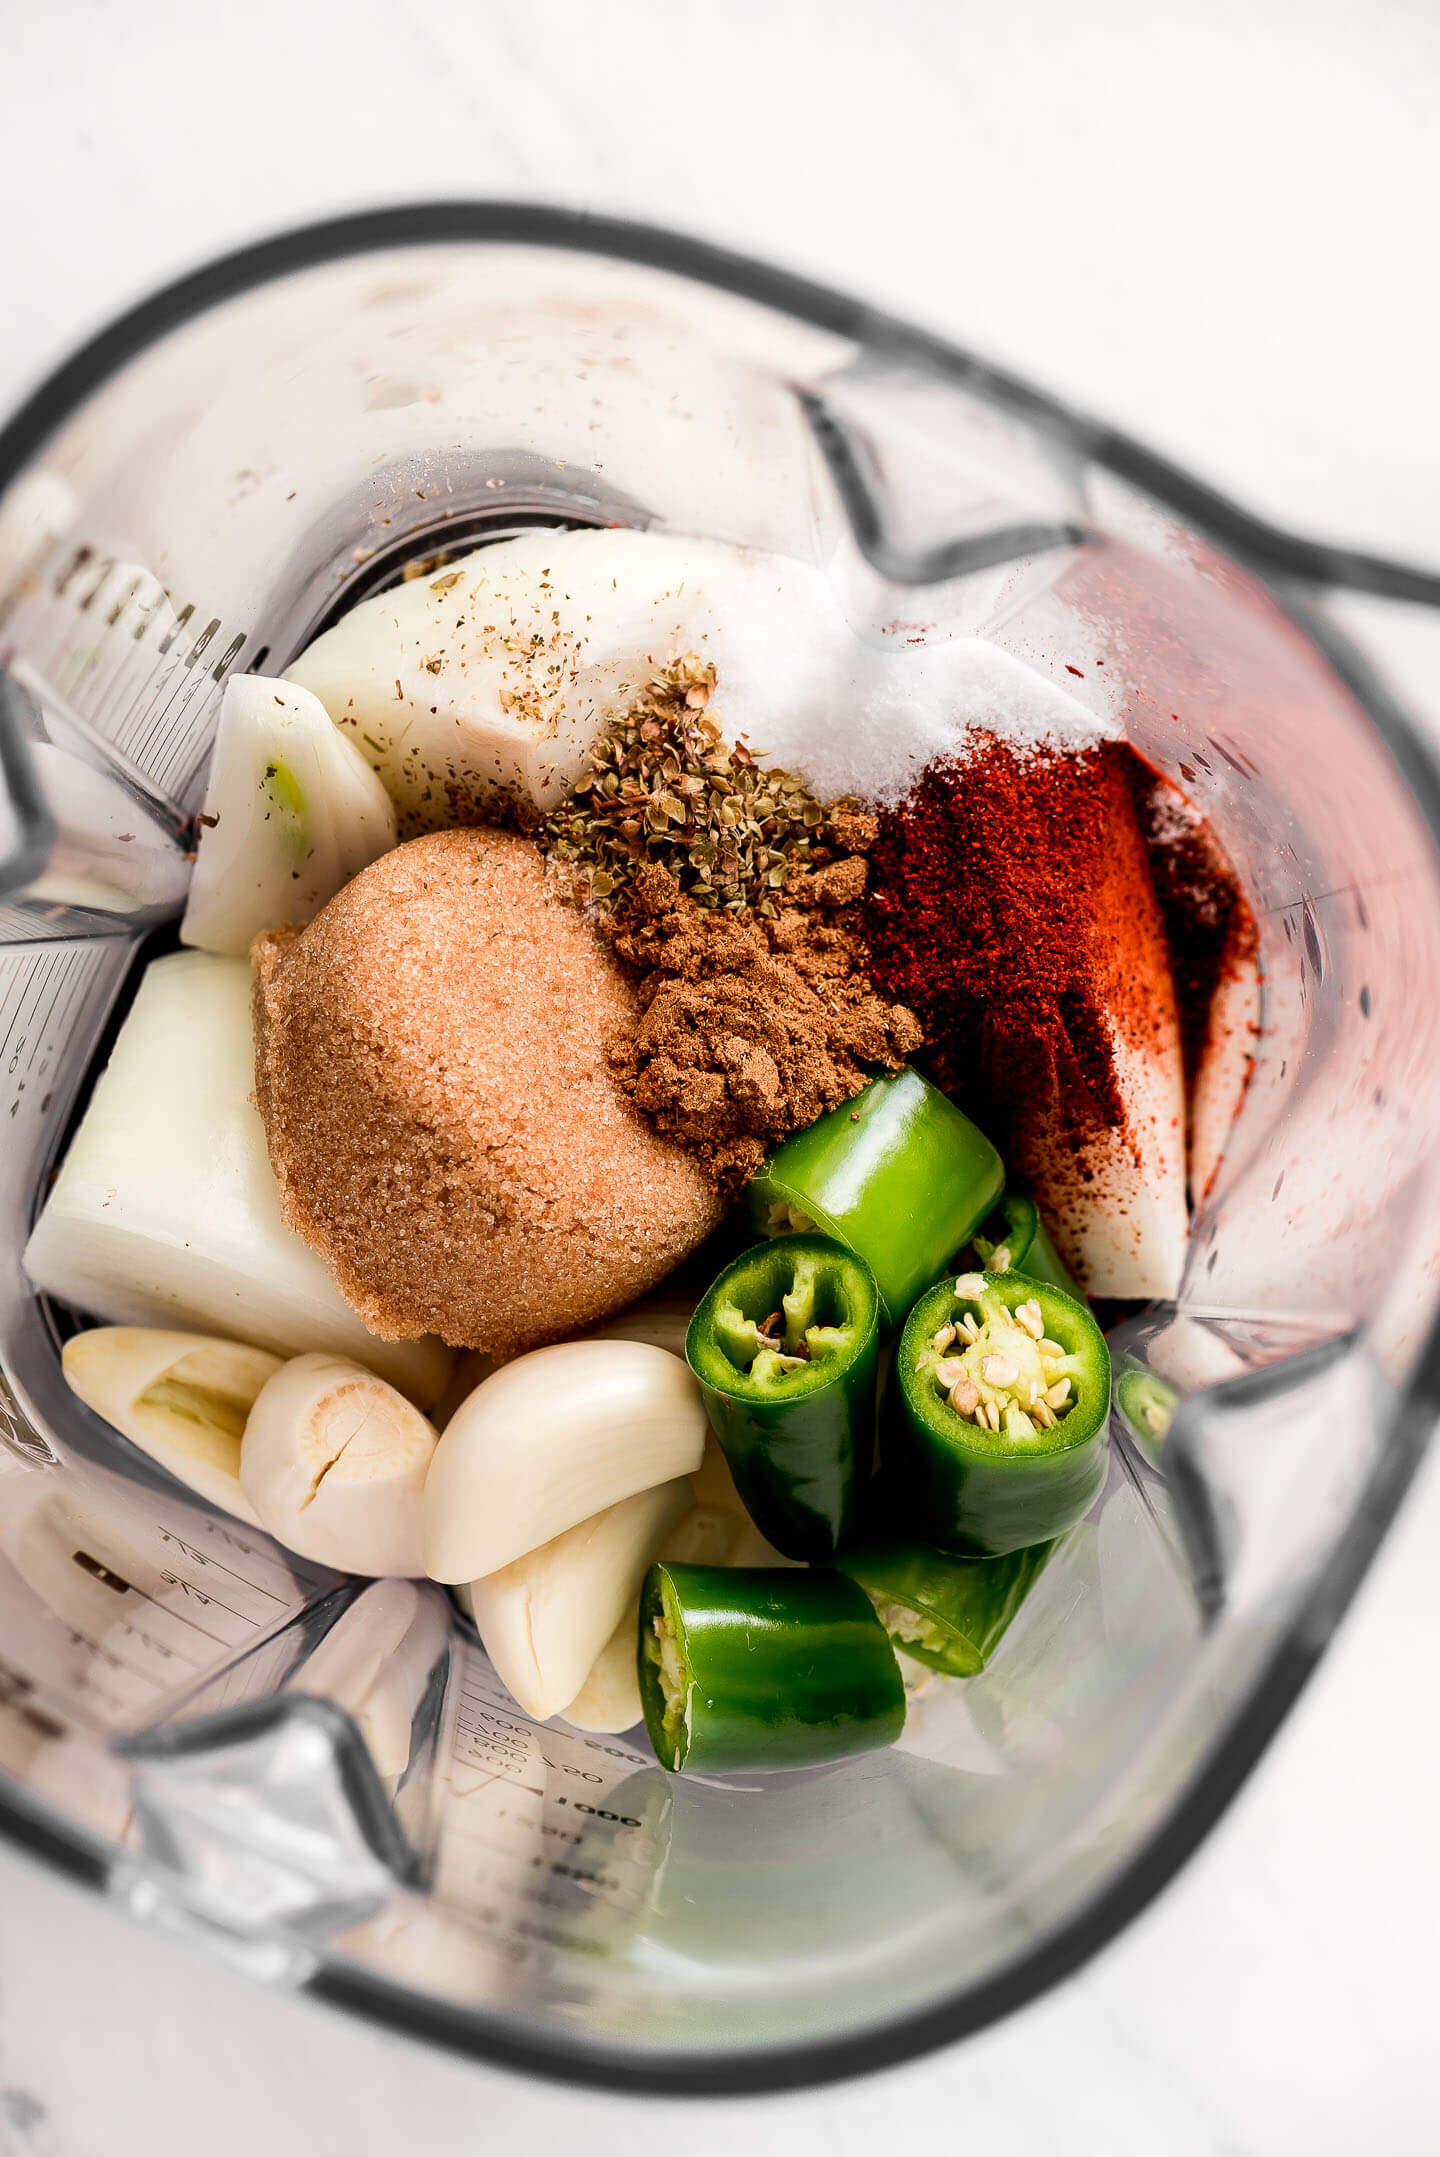 A blender of onion, garlic, jalapeno, brown sugar, spices, and dried herbs,